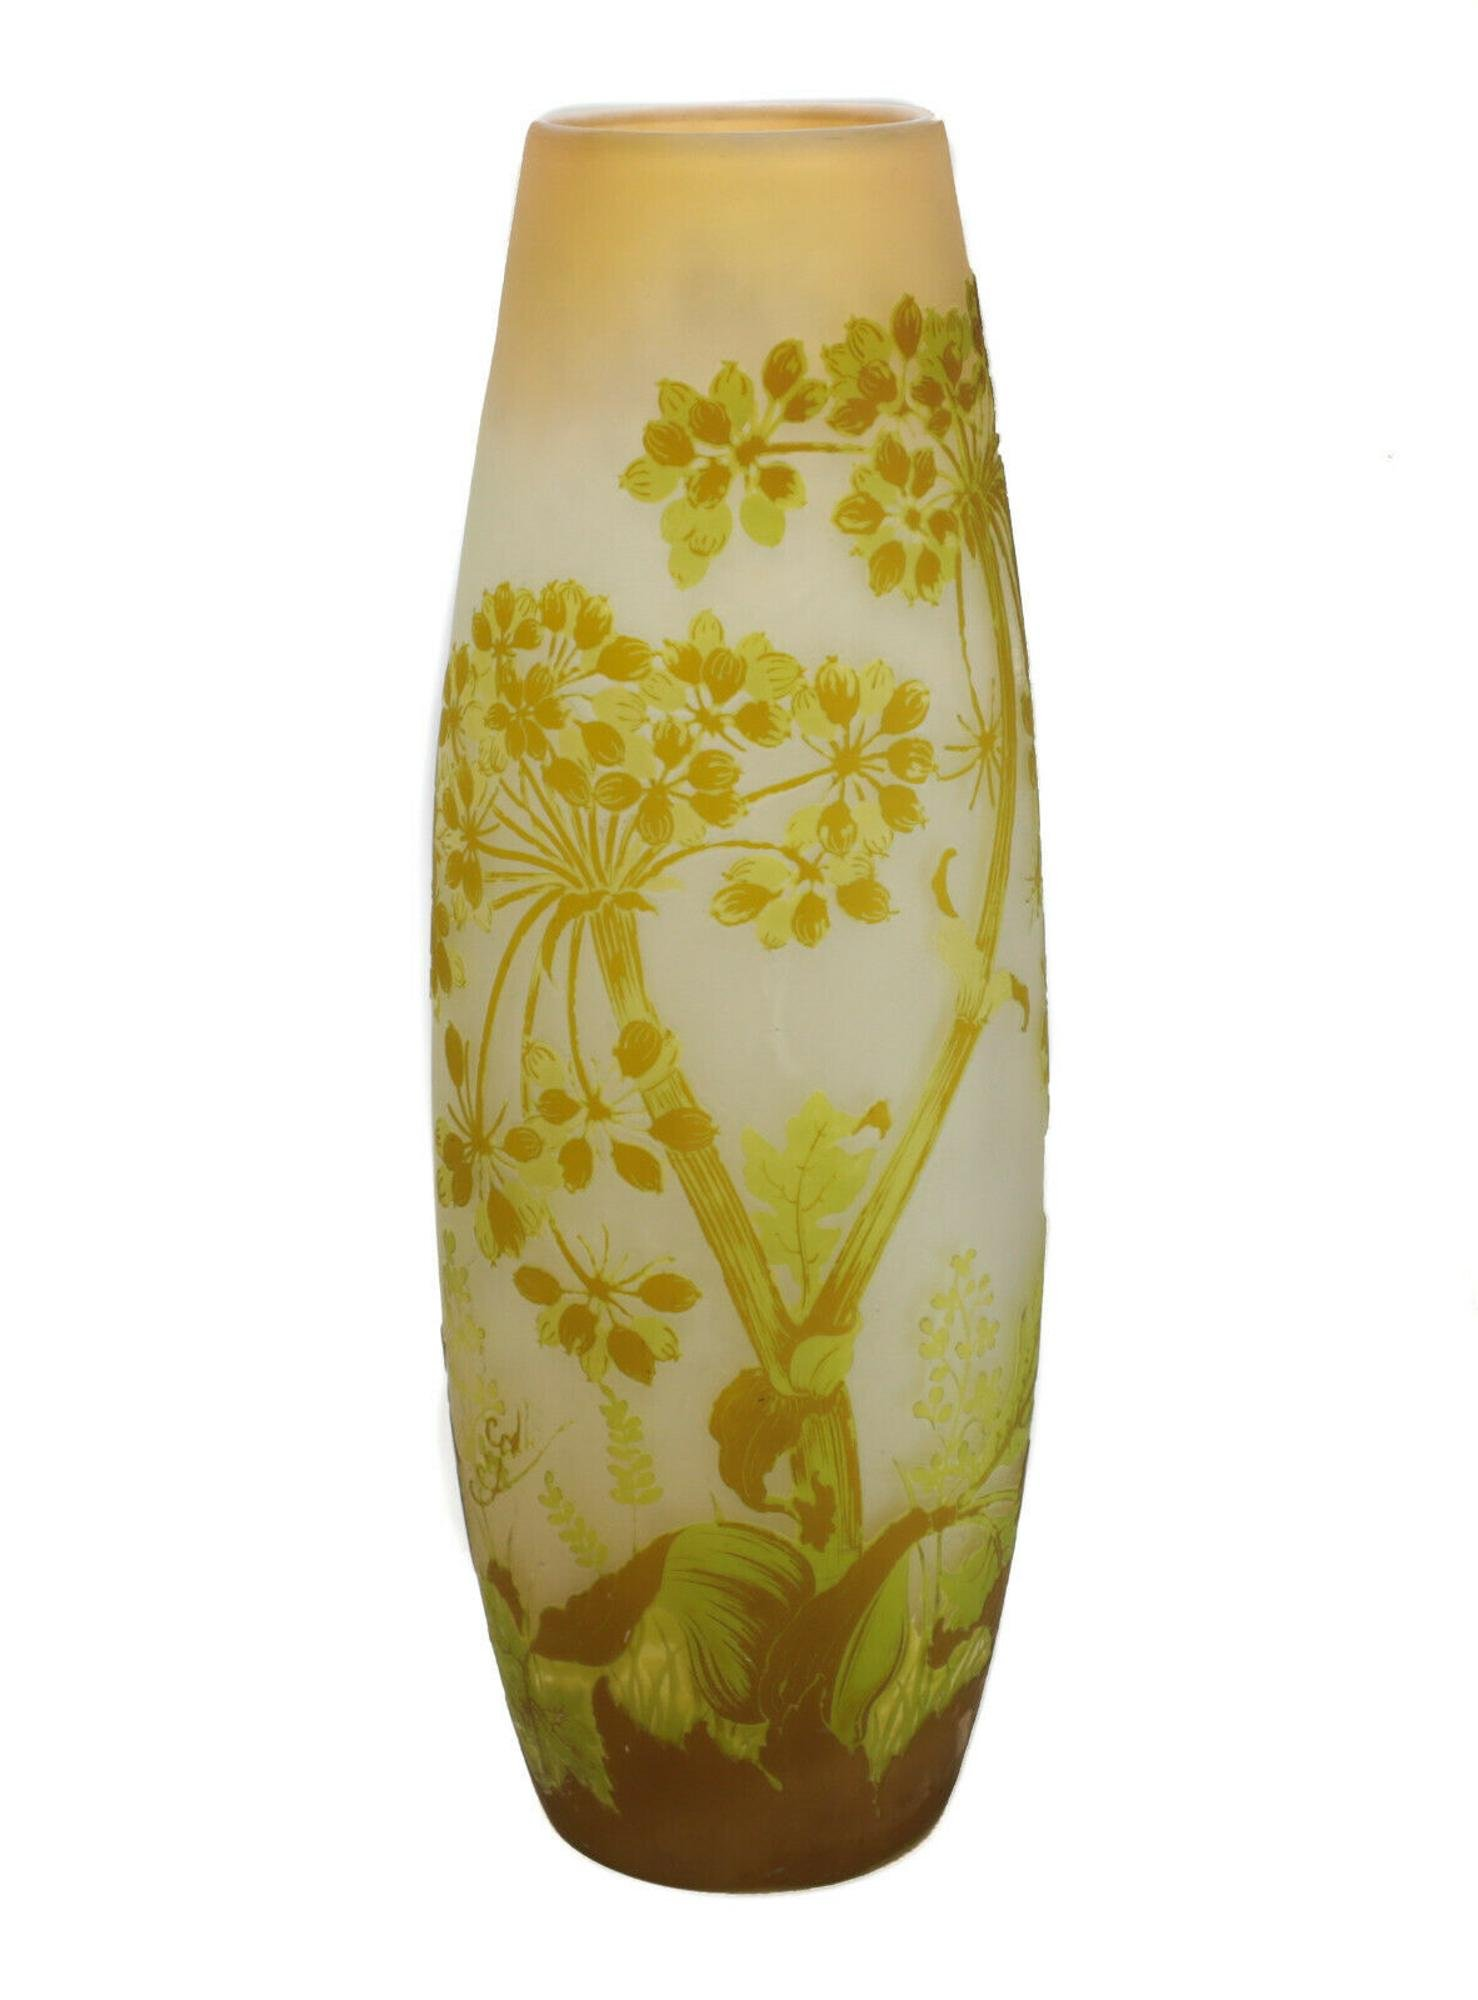 Galle Yellow Over Clear Art Glass Cameo Vase, 19th C